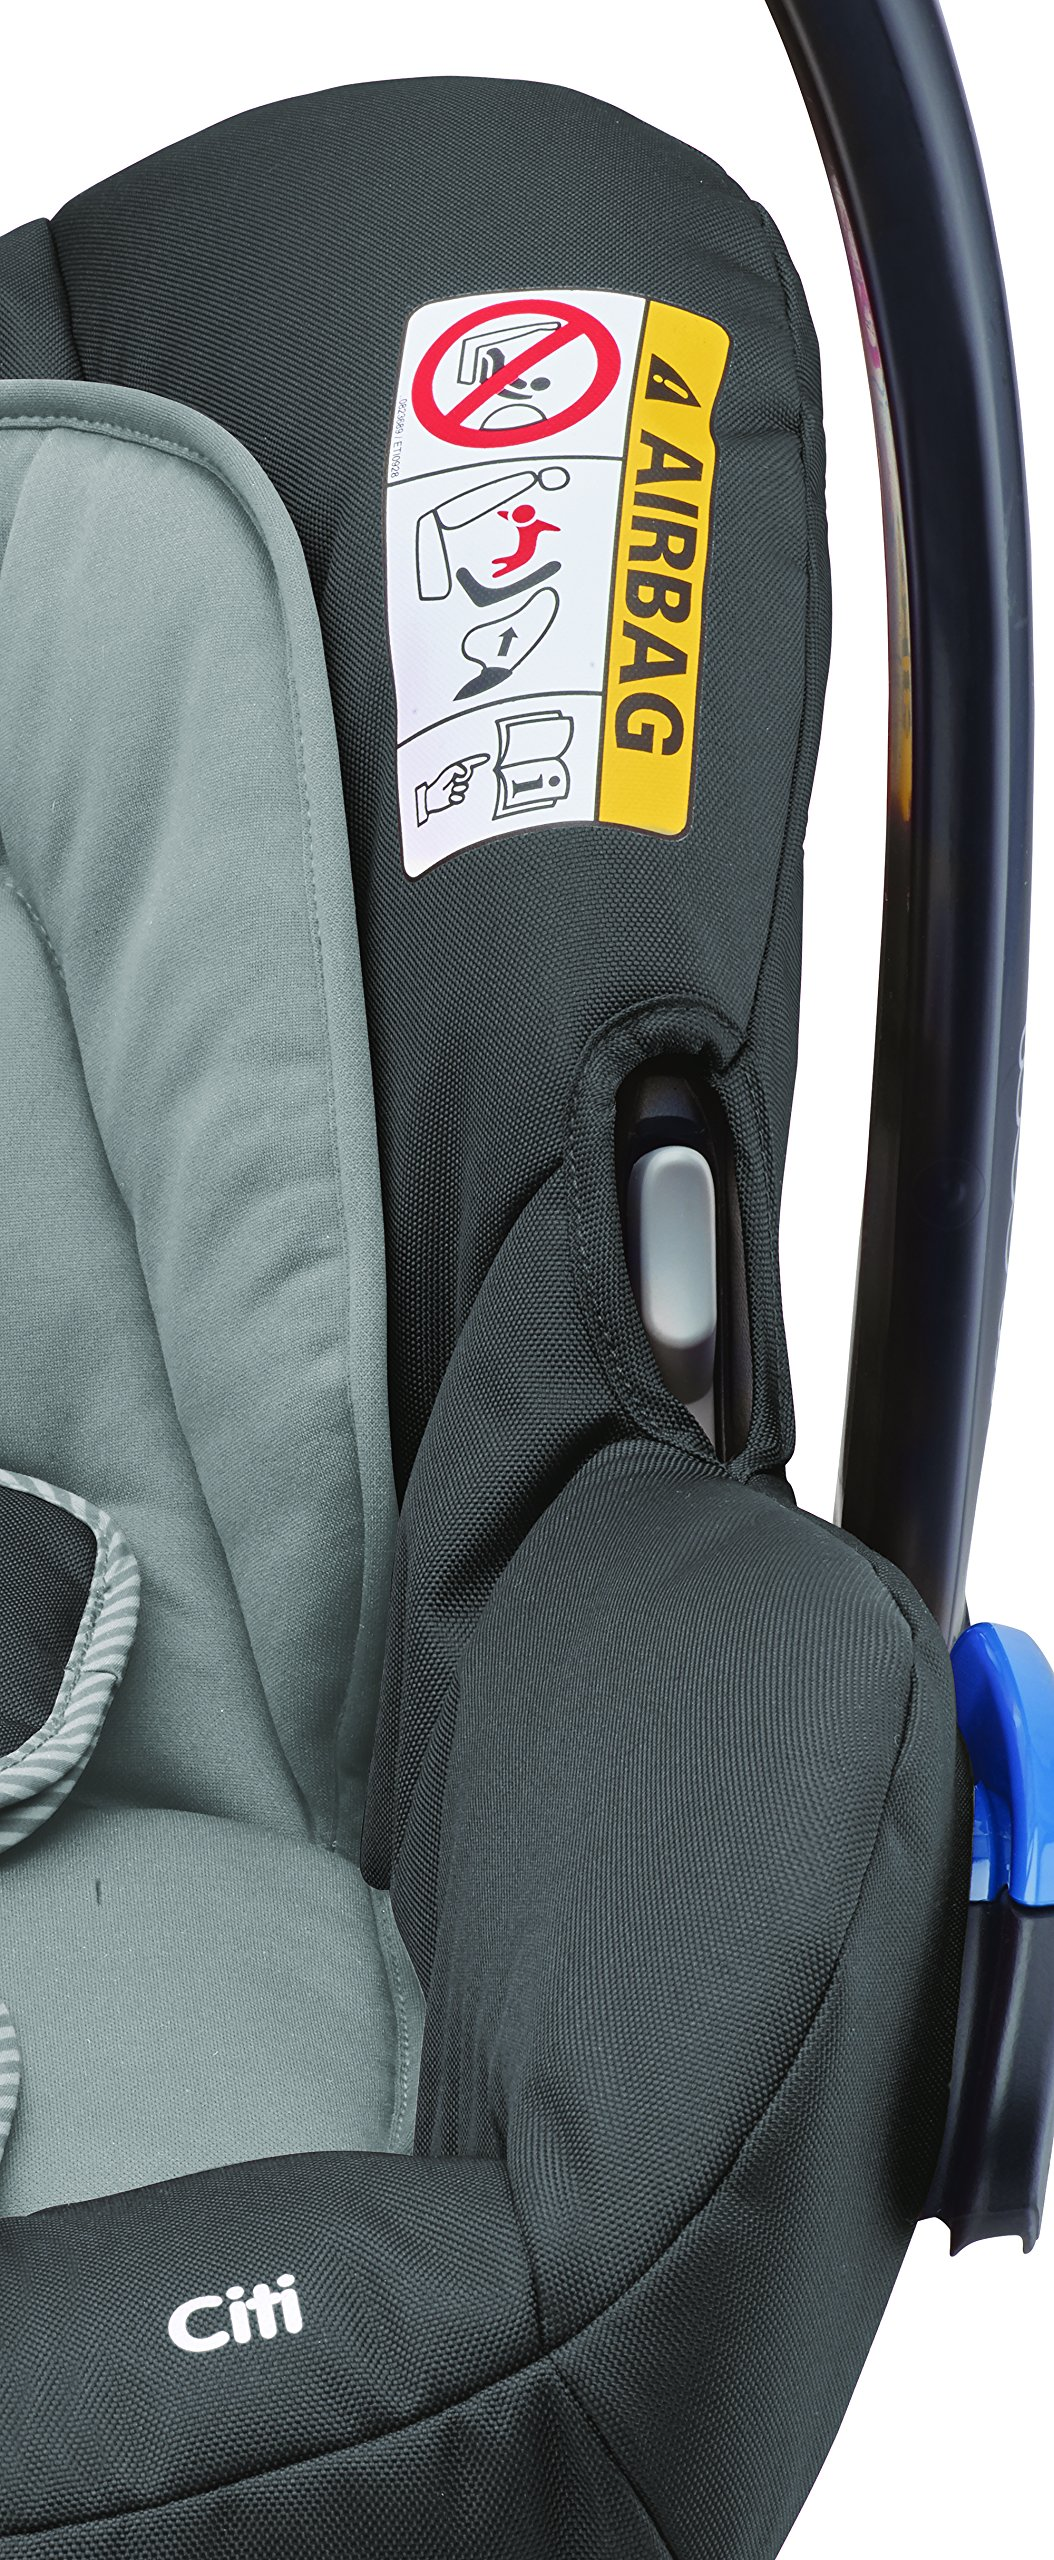 Maxi-Cosi Kinderautositz Citi Concrete Grey Maxi-Cosi Side protection system, guarantees optimal protection in the event of a side impact Lightweight, light weight and ergonomically shaped safety bar for use as carrying handle Practical travel system 8